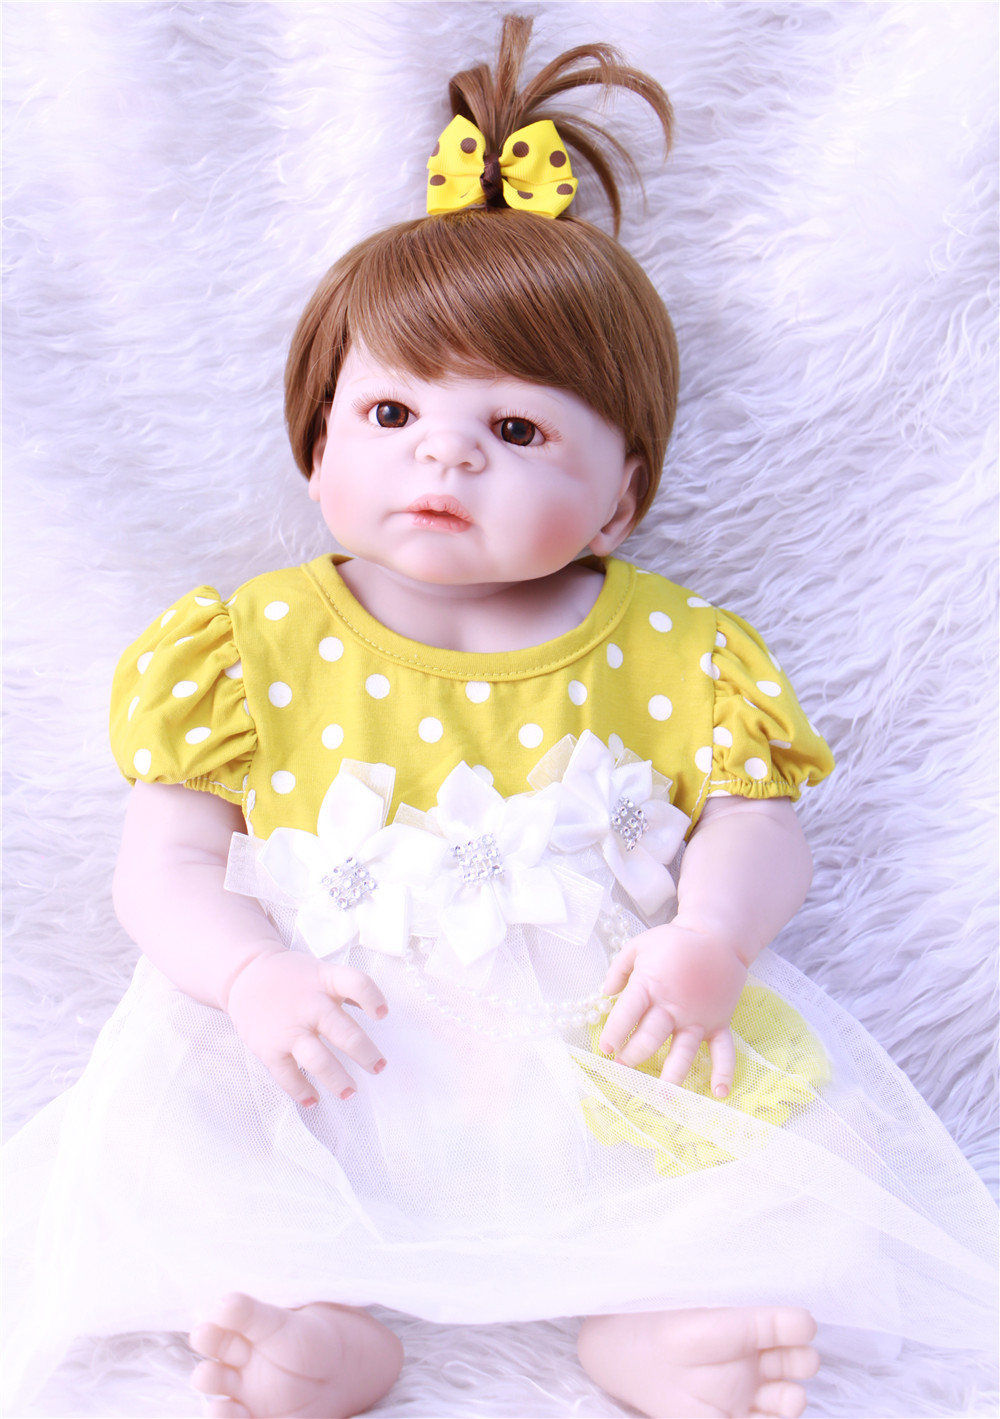 bebe reborn brown eyes girl doll menina de full silicone menina 55cm Reborn Handmade Baby Dolls Vinyl completa toys for children 60w 12v 5a waterproof outdoor single output switching power supply smps ac to dc